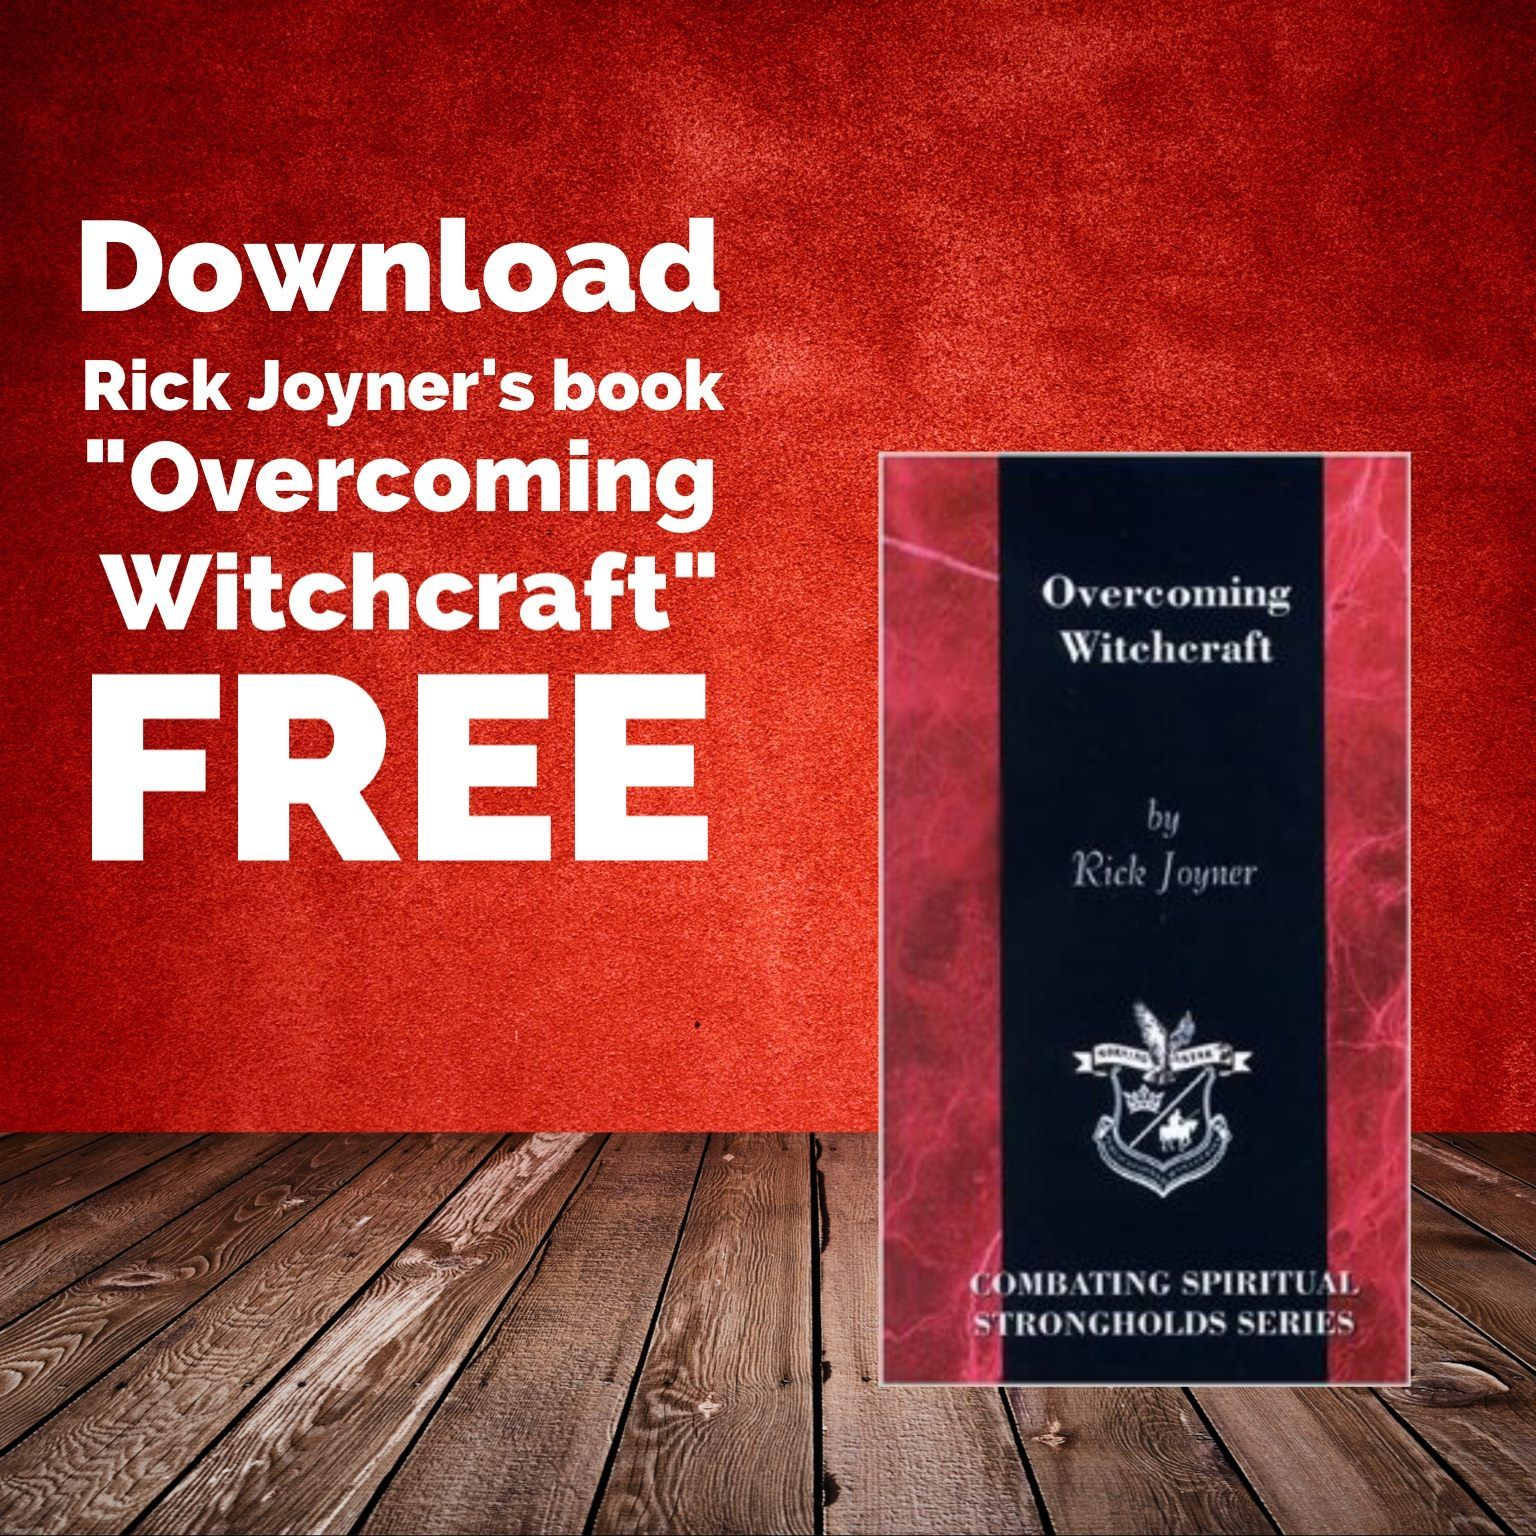 Download Rick Joyner's Book